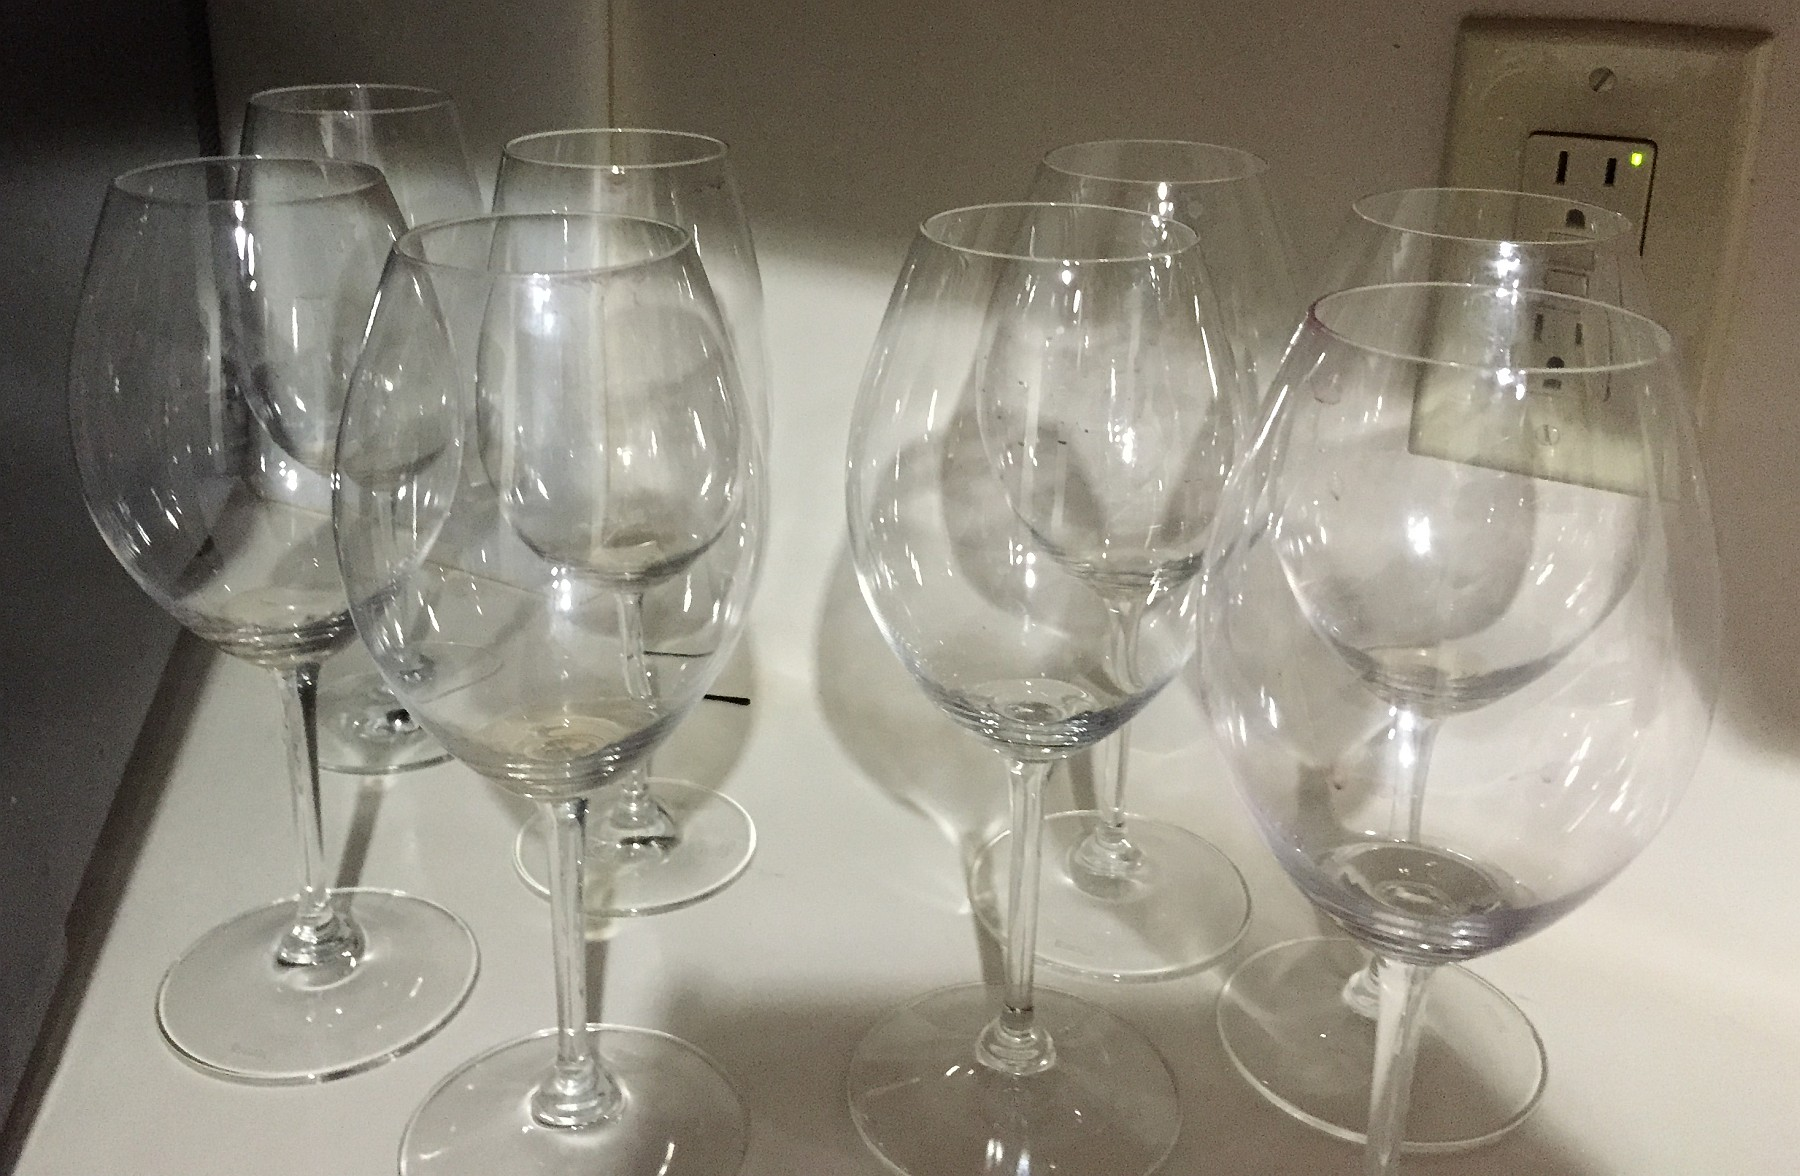 Wine glasses needing cleaning